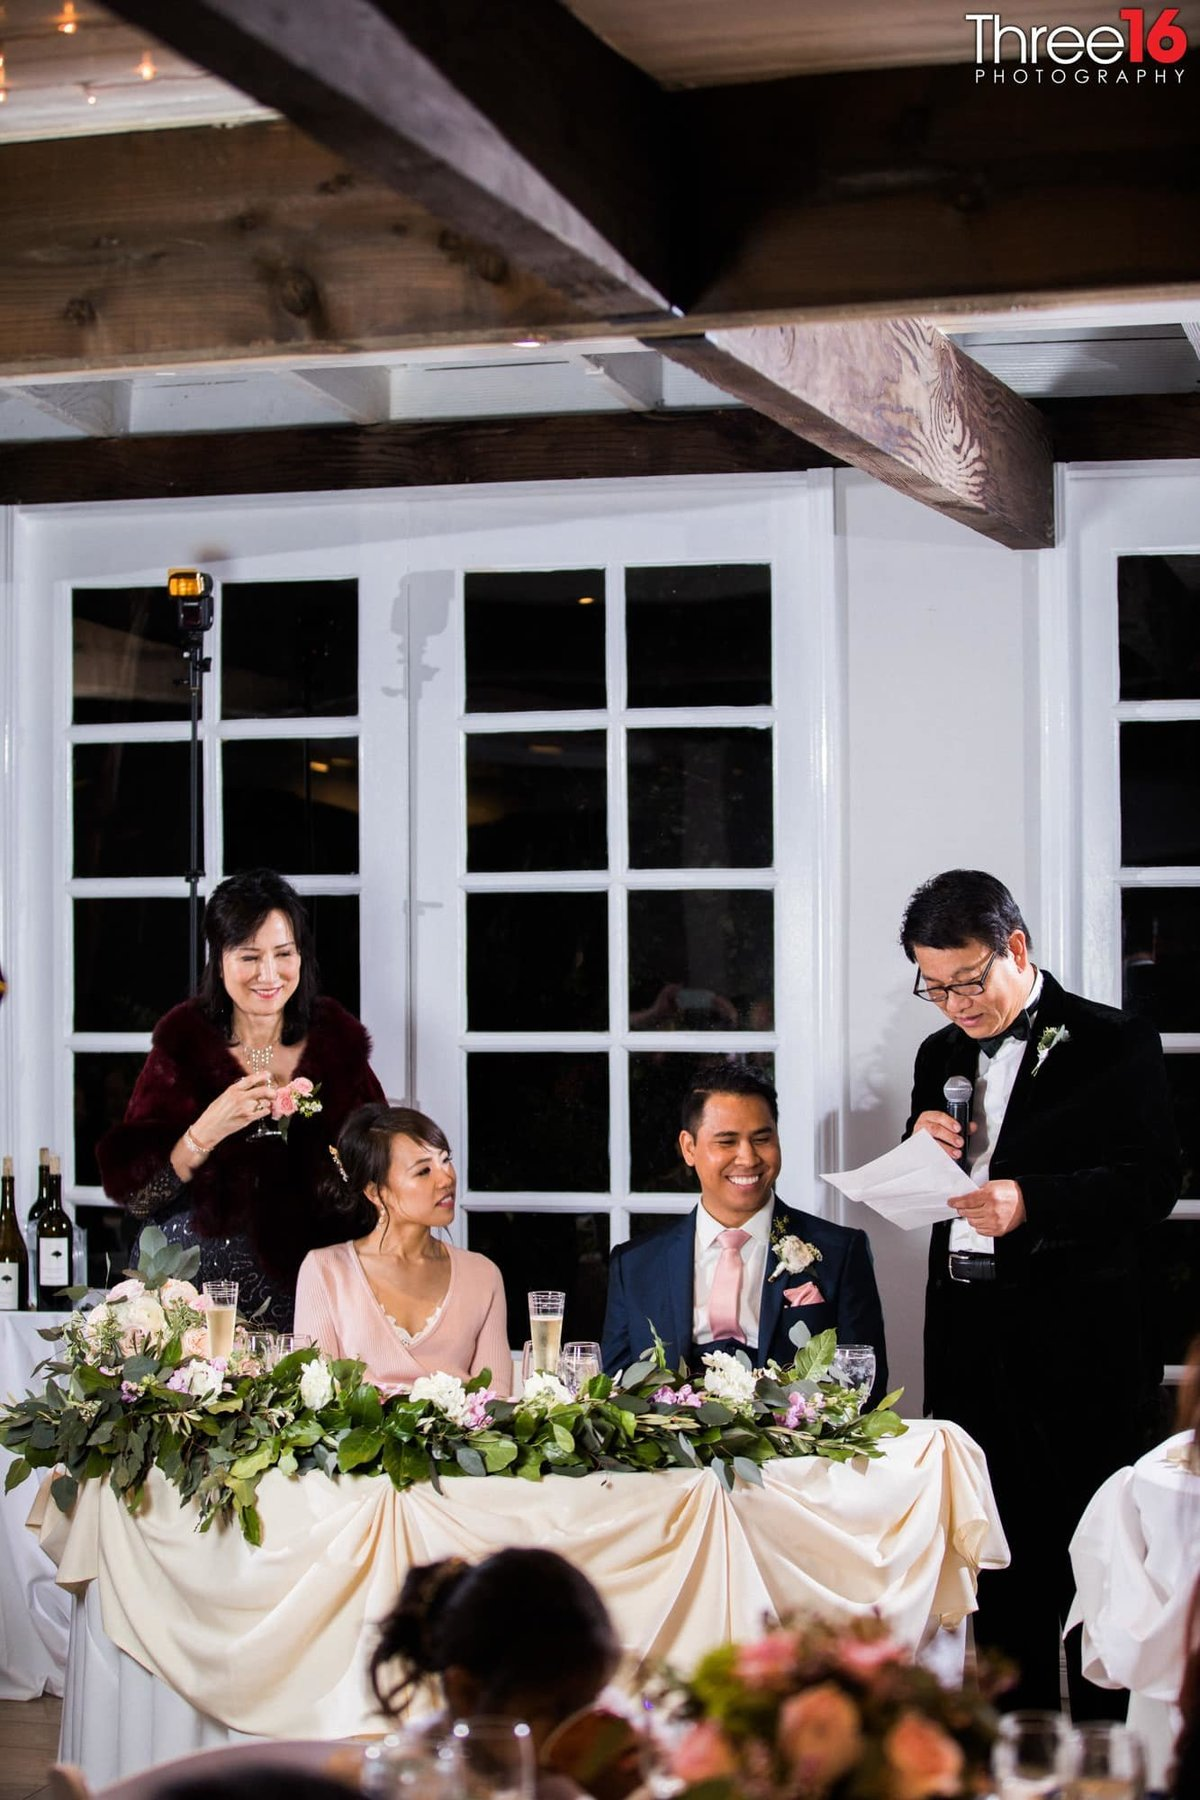 Best Man toasts the newly married couple at the wedding reception